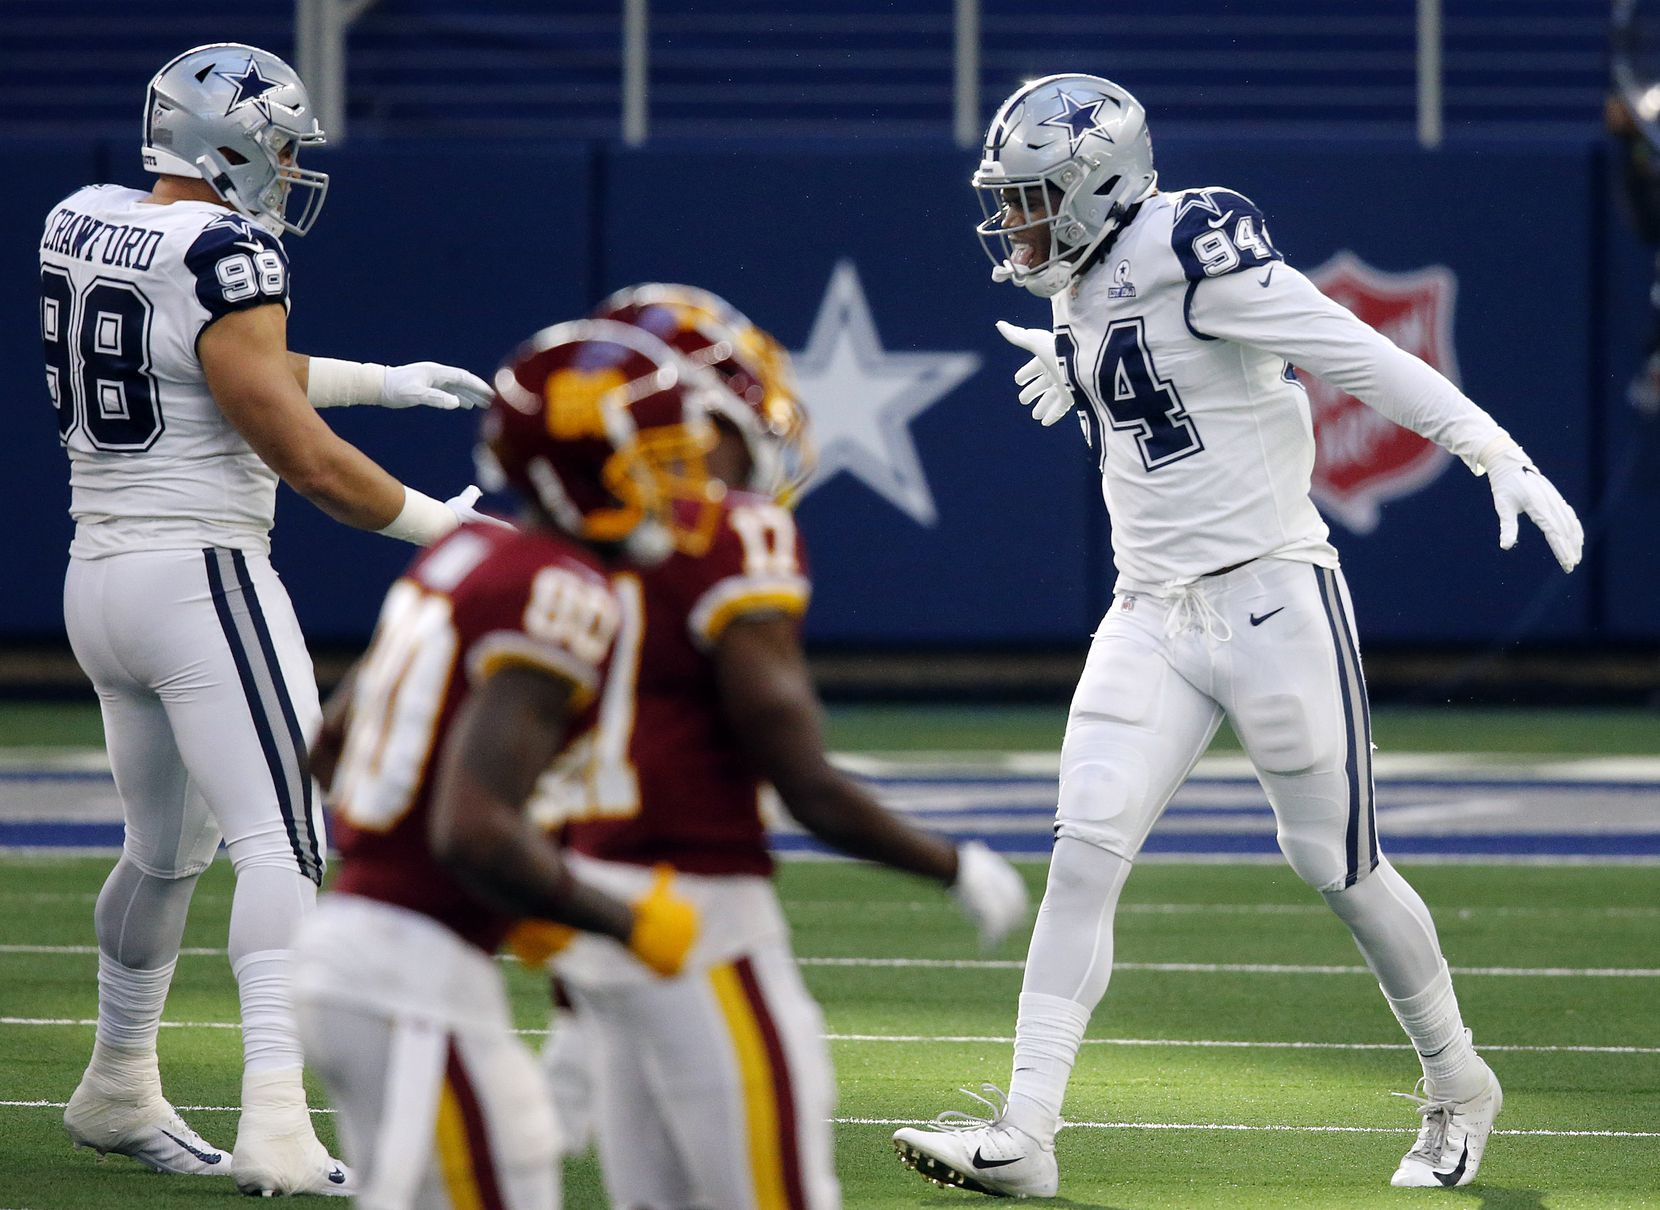 Dallas Cowboys defensive end Randy Gregory (94) celebrates his third down stop against the Washington Football Team during the first quarter at AT&T Stadium in Arlington, Thursday, November 26, 2020. (Tom Fox/The Dallas Morning News)